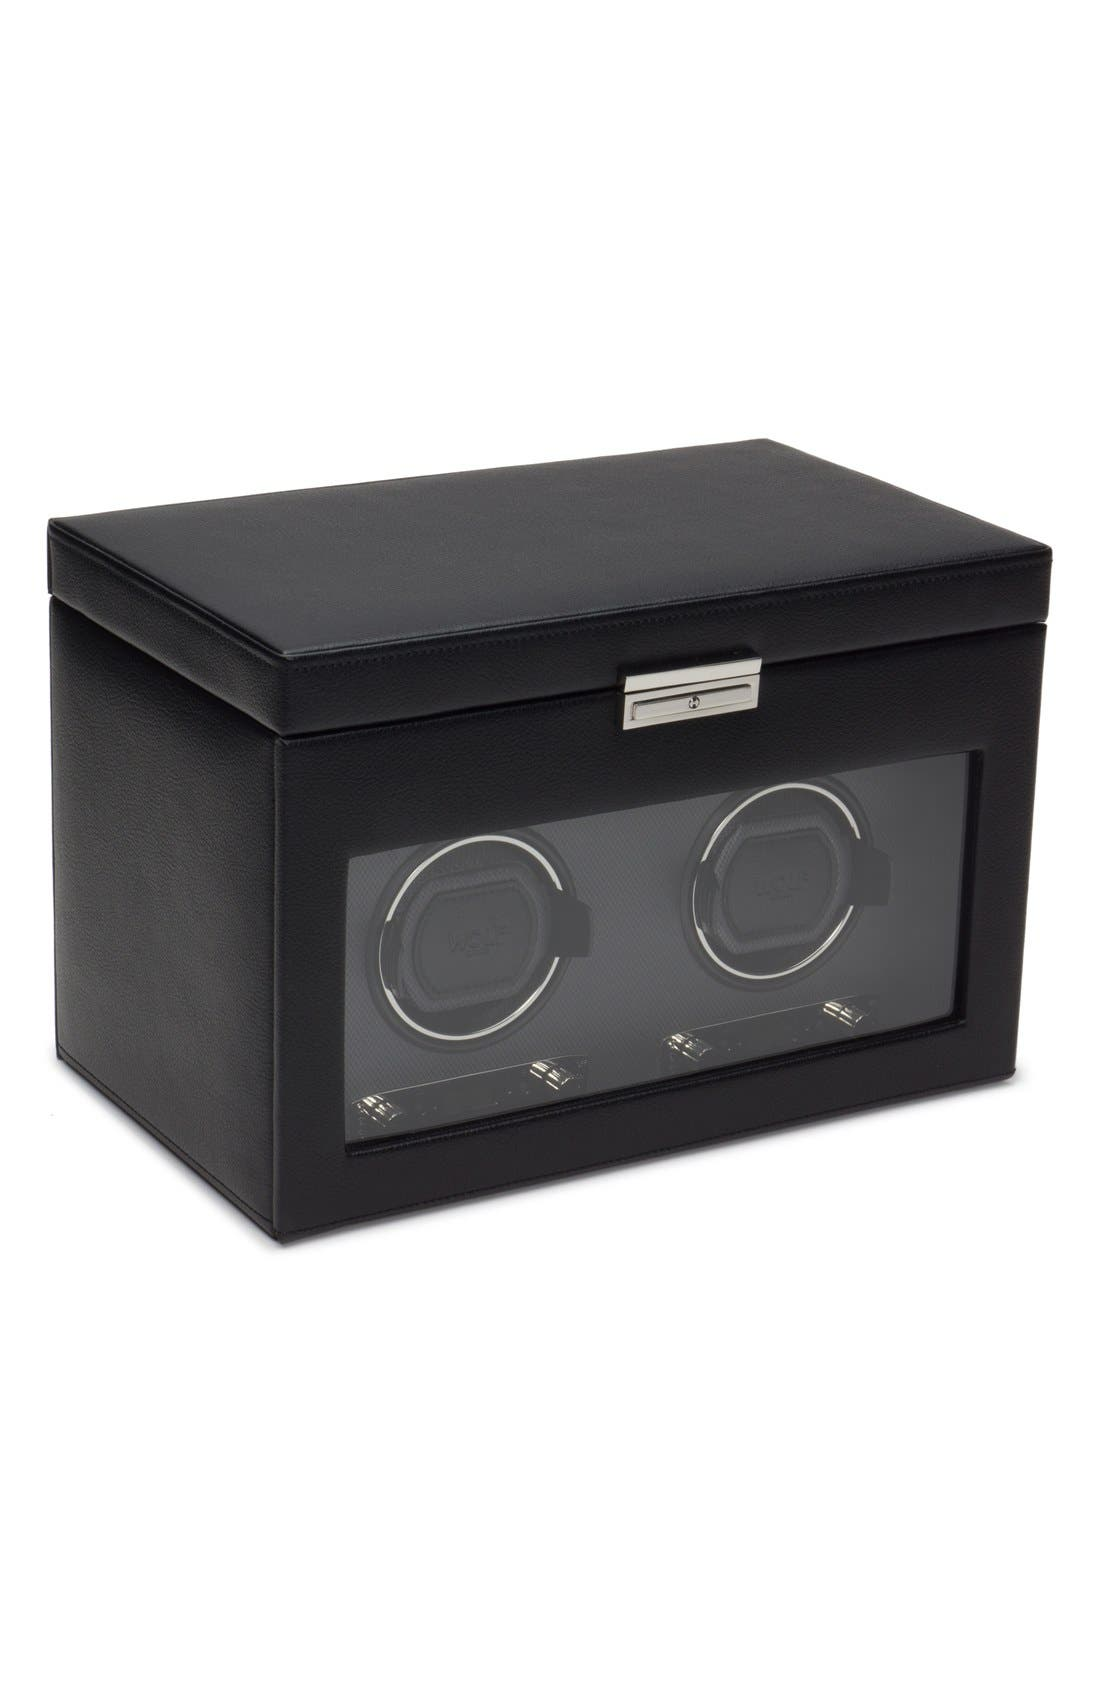 WOLF Viceroy Double Watch Winder & Storage Space